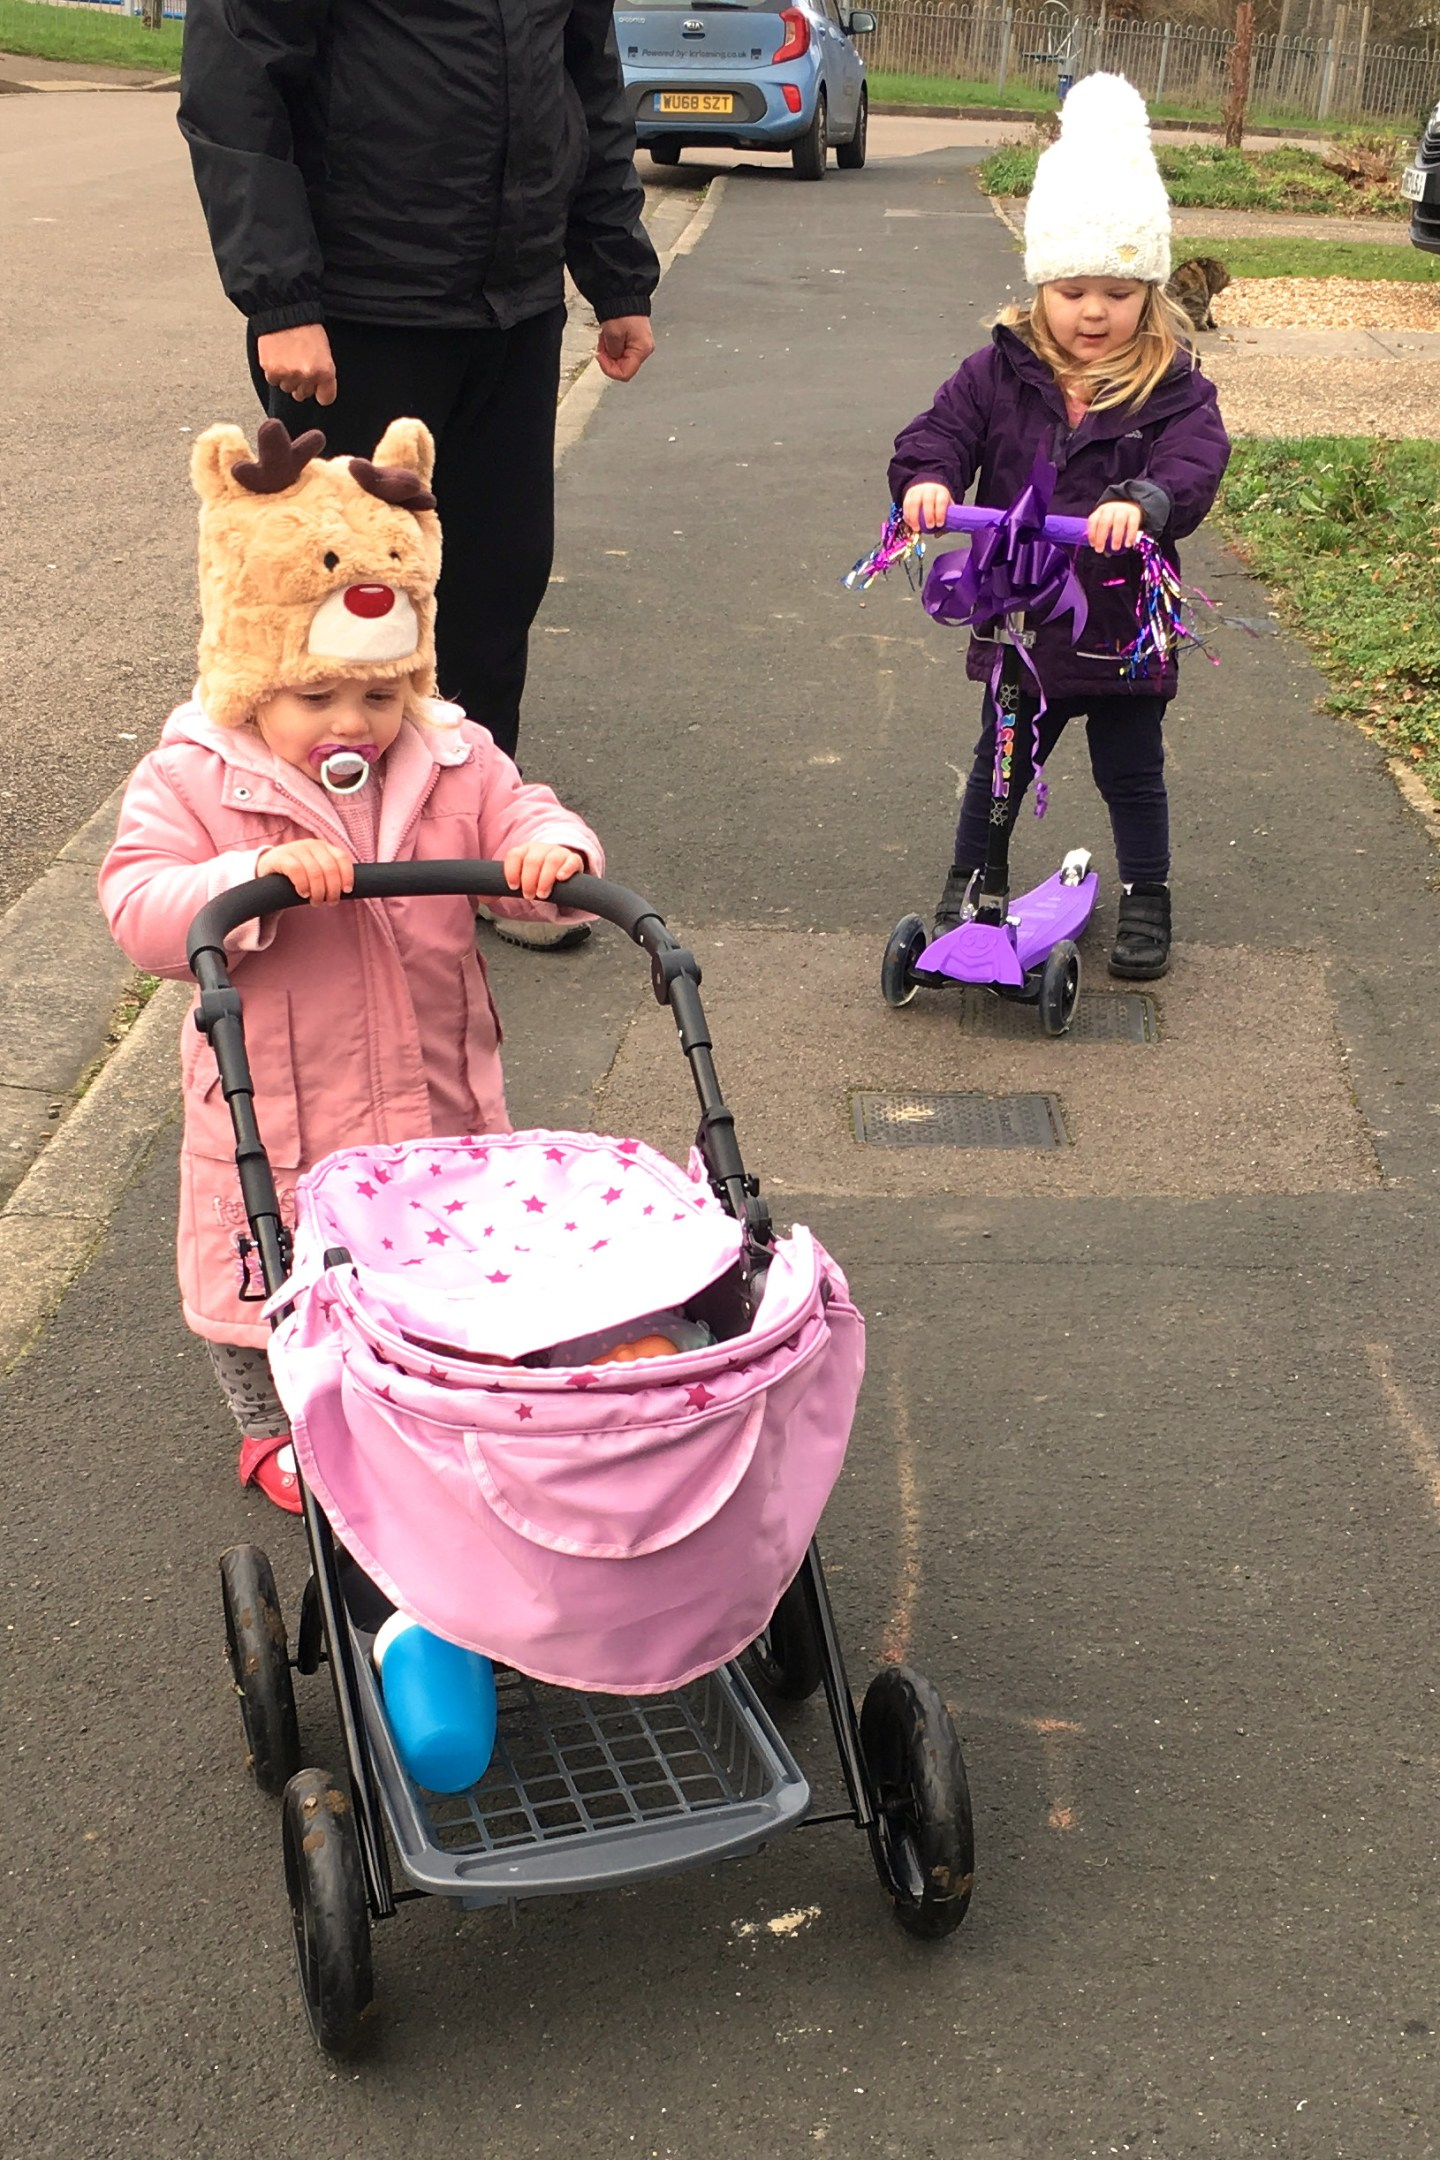 two sisters, one pushing a dolls pram, and one on a scooter, going out for a walk with their dad